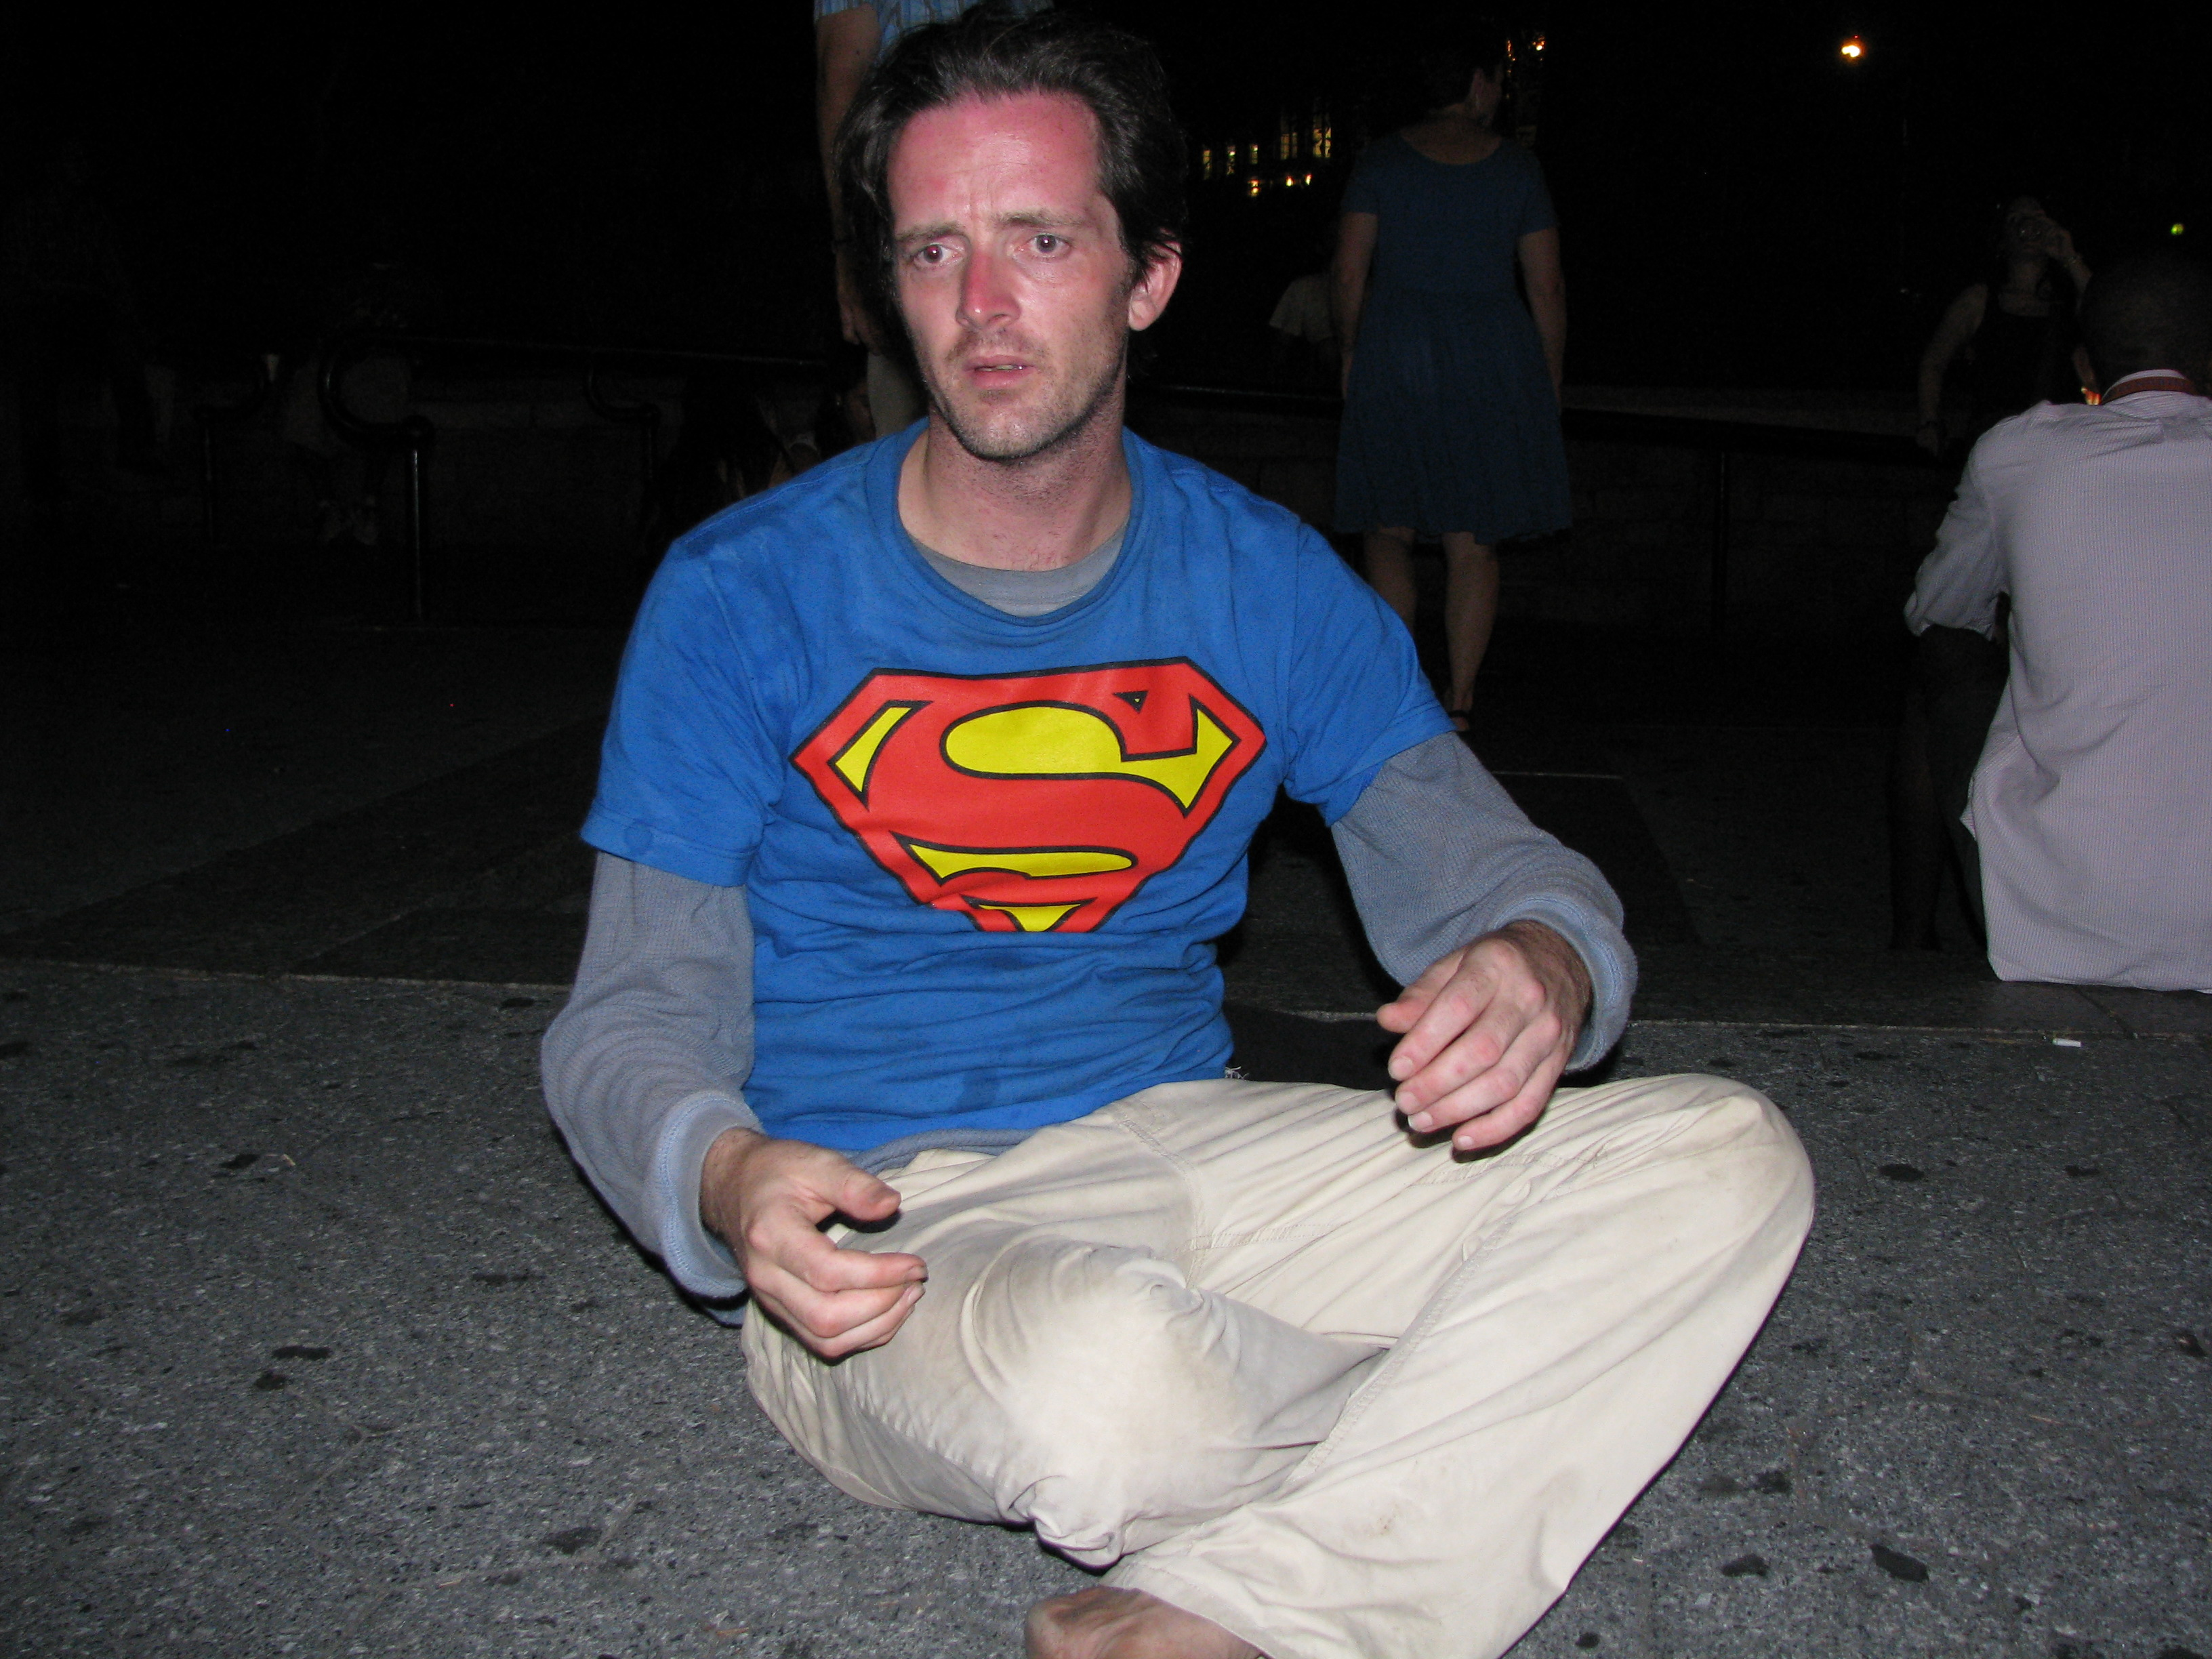 man in superman shirt